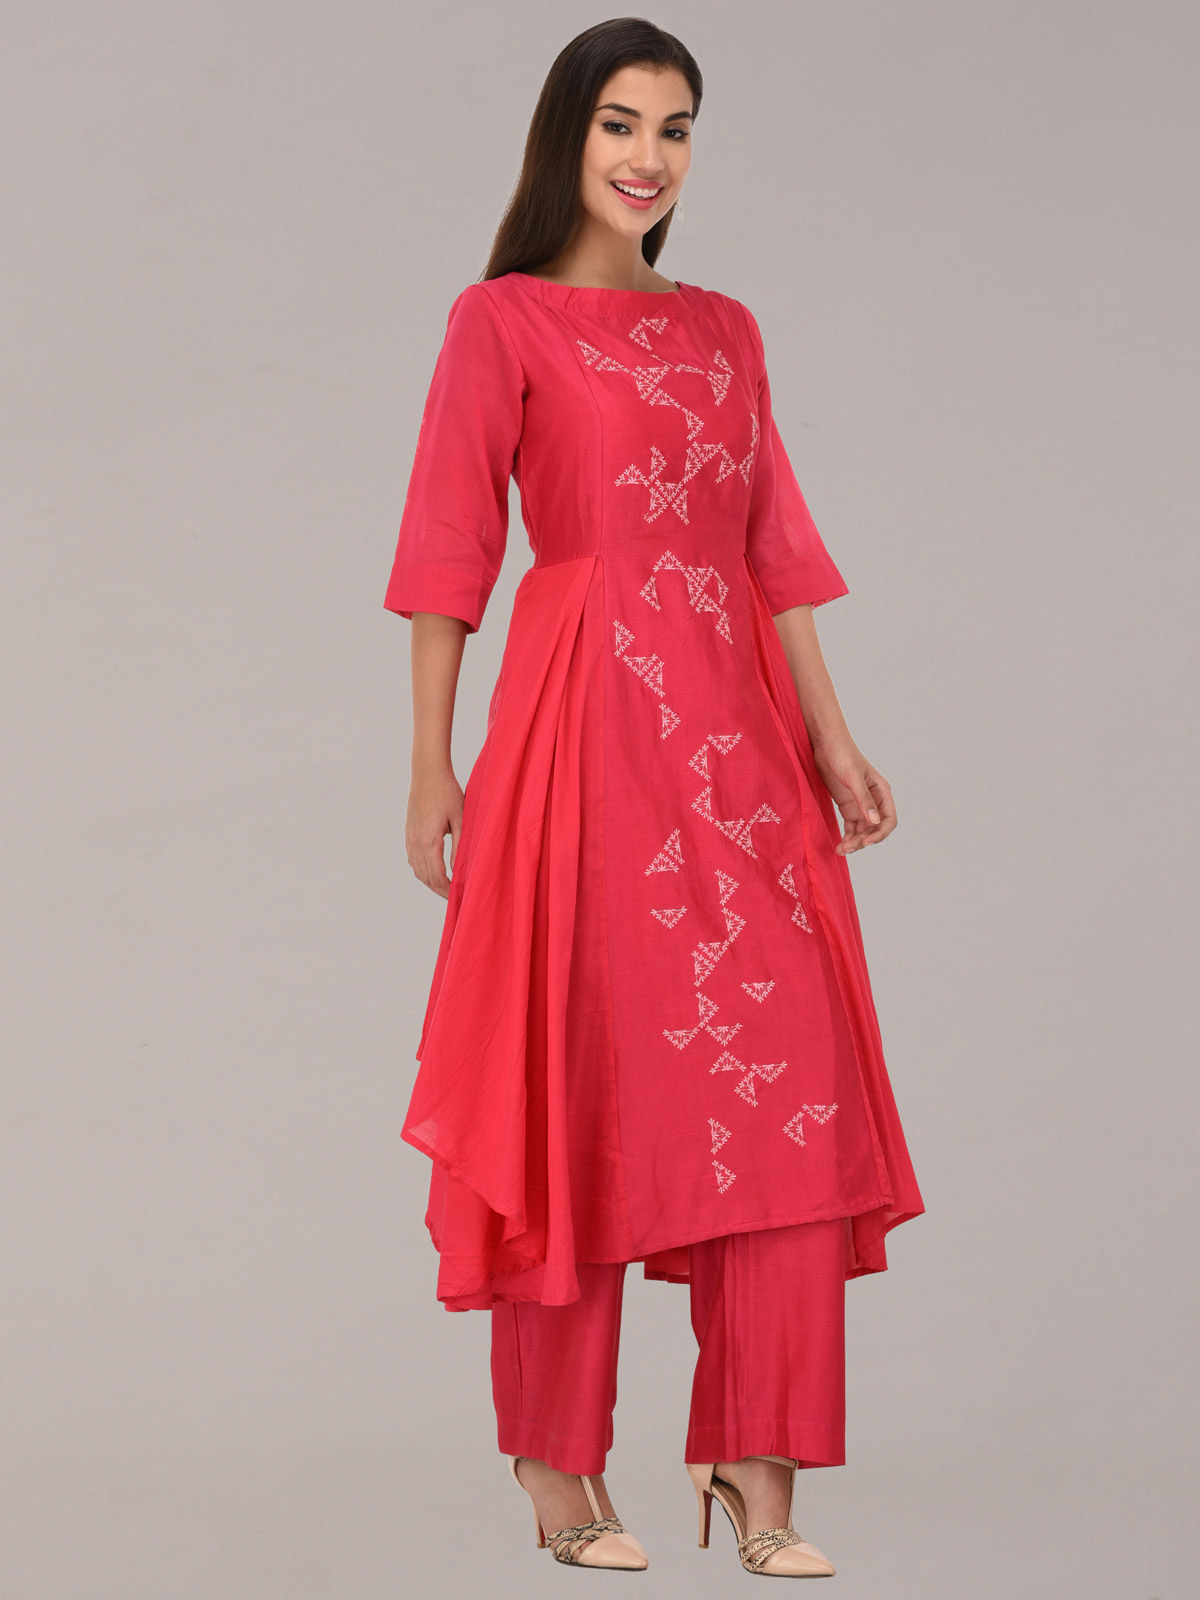 Embroided pink chanderi silk flare flare tunic with bottom